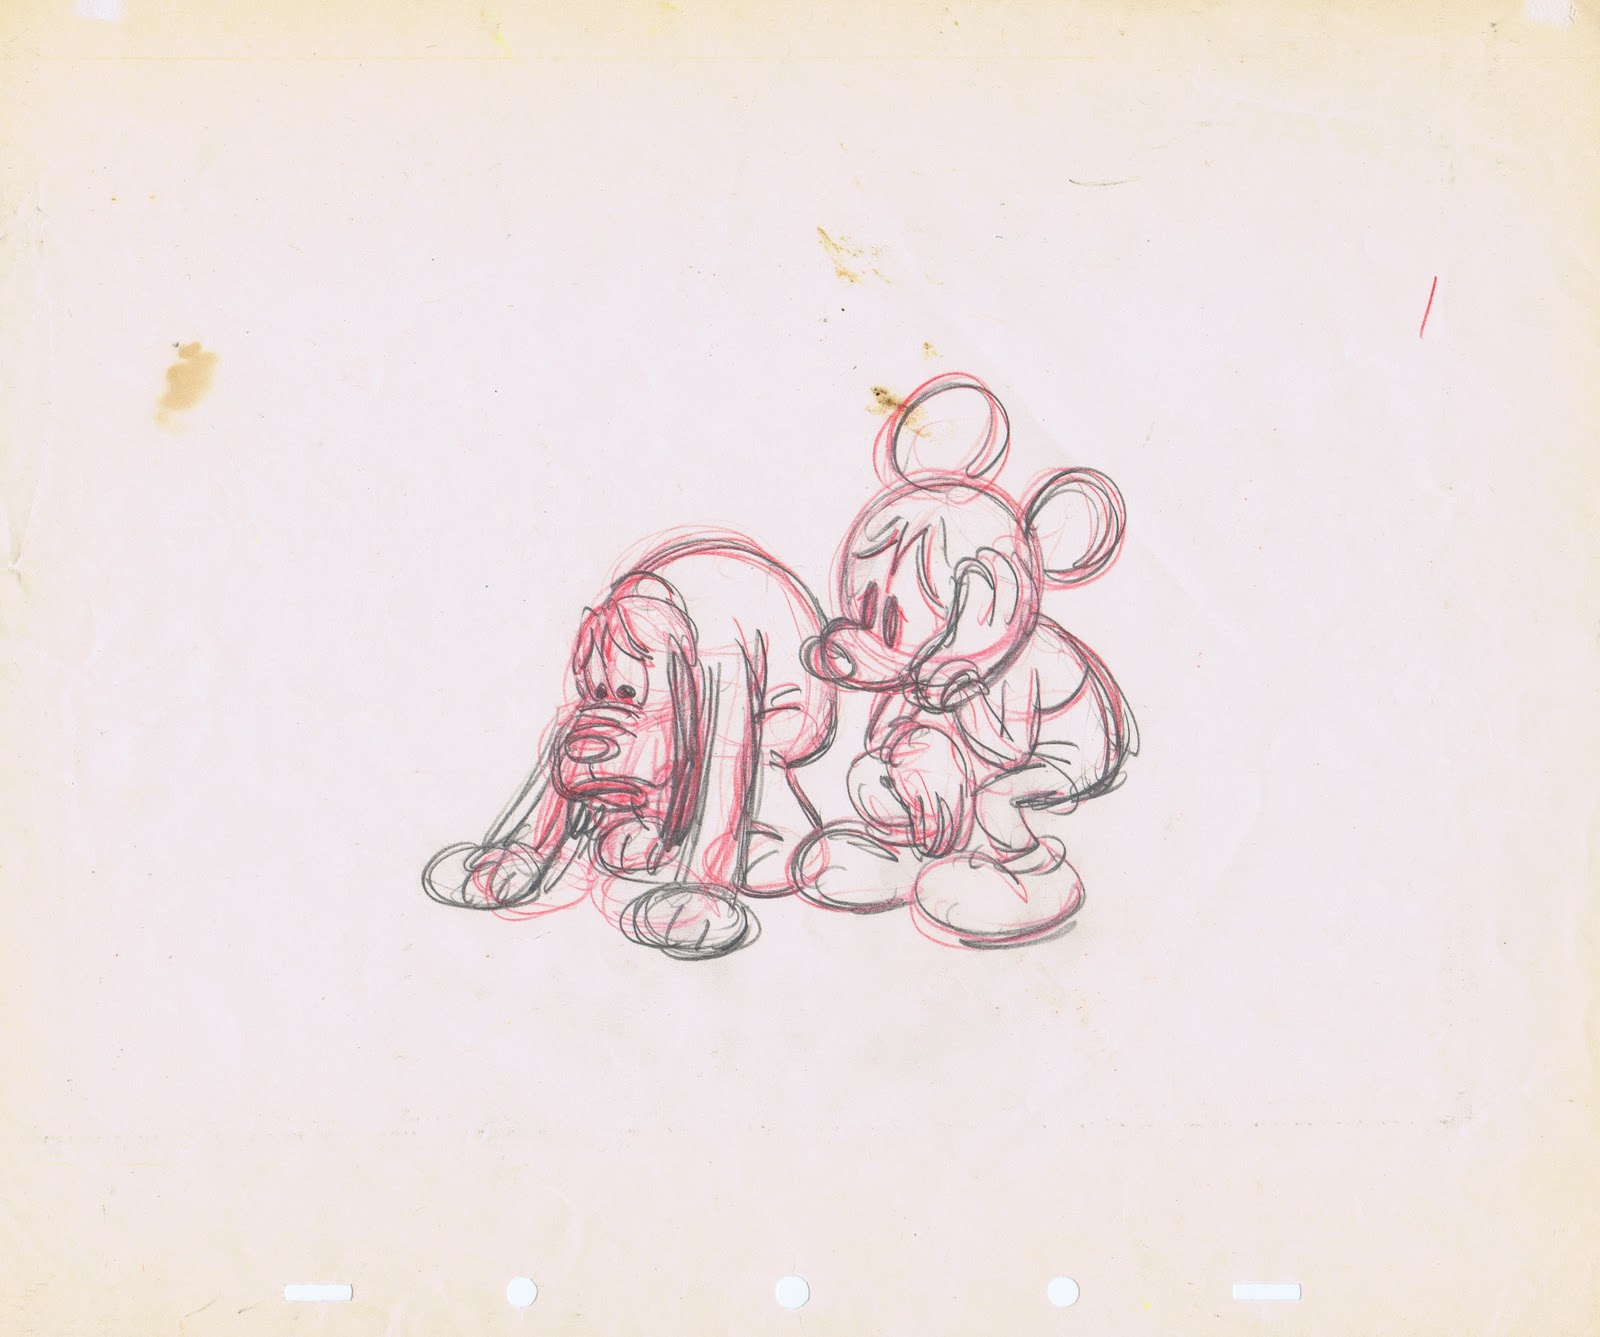 Walt Disney Sketches - Pluto & Mickey Mouse - Walt Disney ...